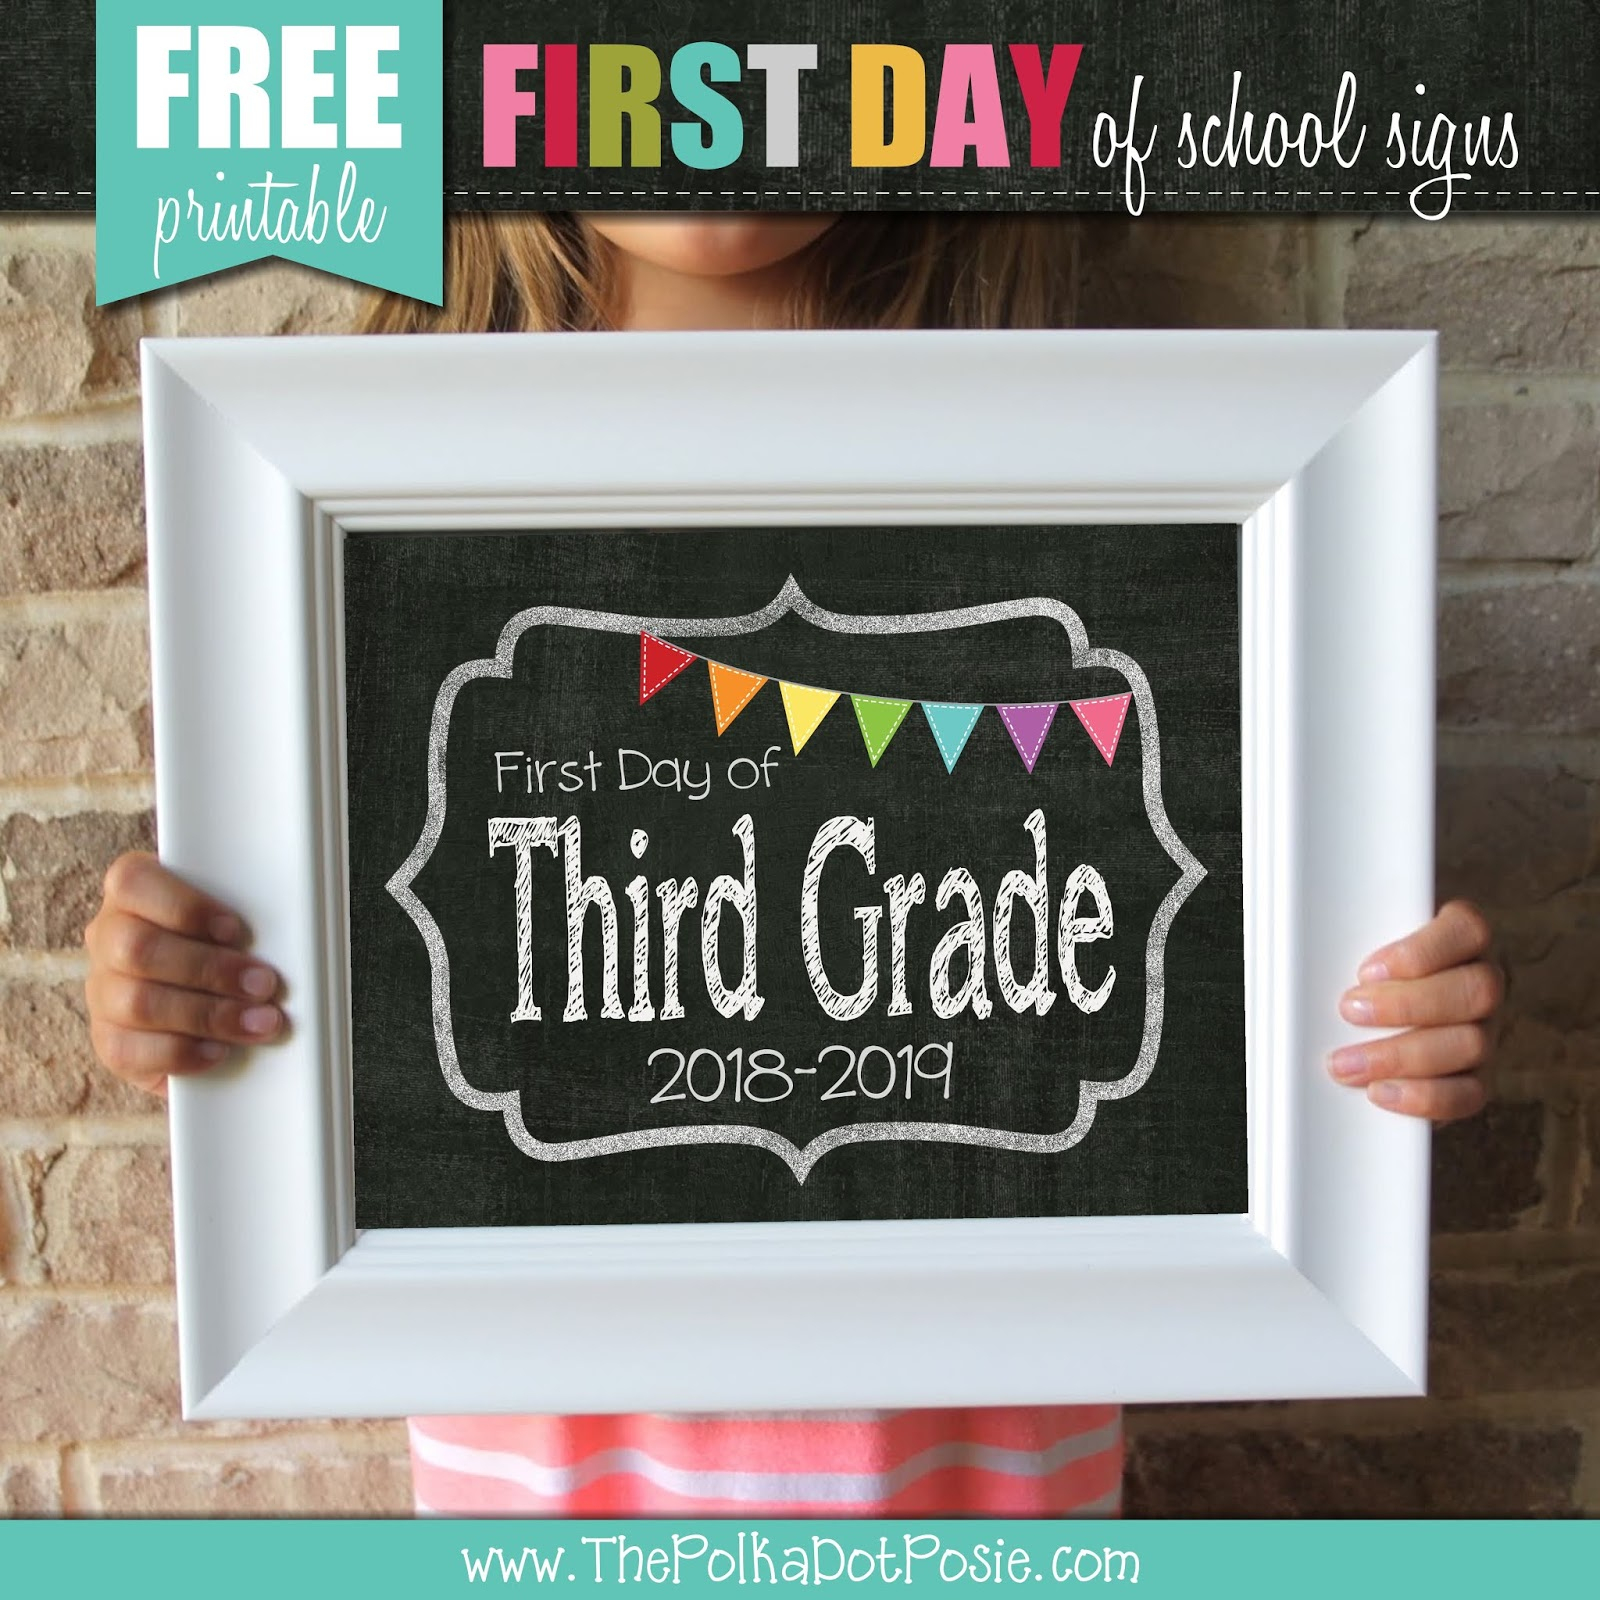 The Polka Dot Posie: Your Back-To-School Countdown Checklist! - Free Printable Fragrance Free Signs